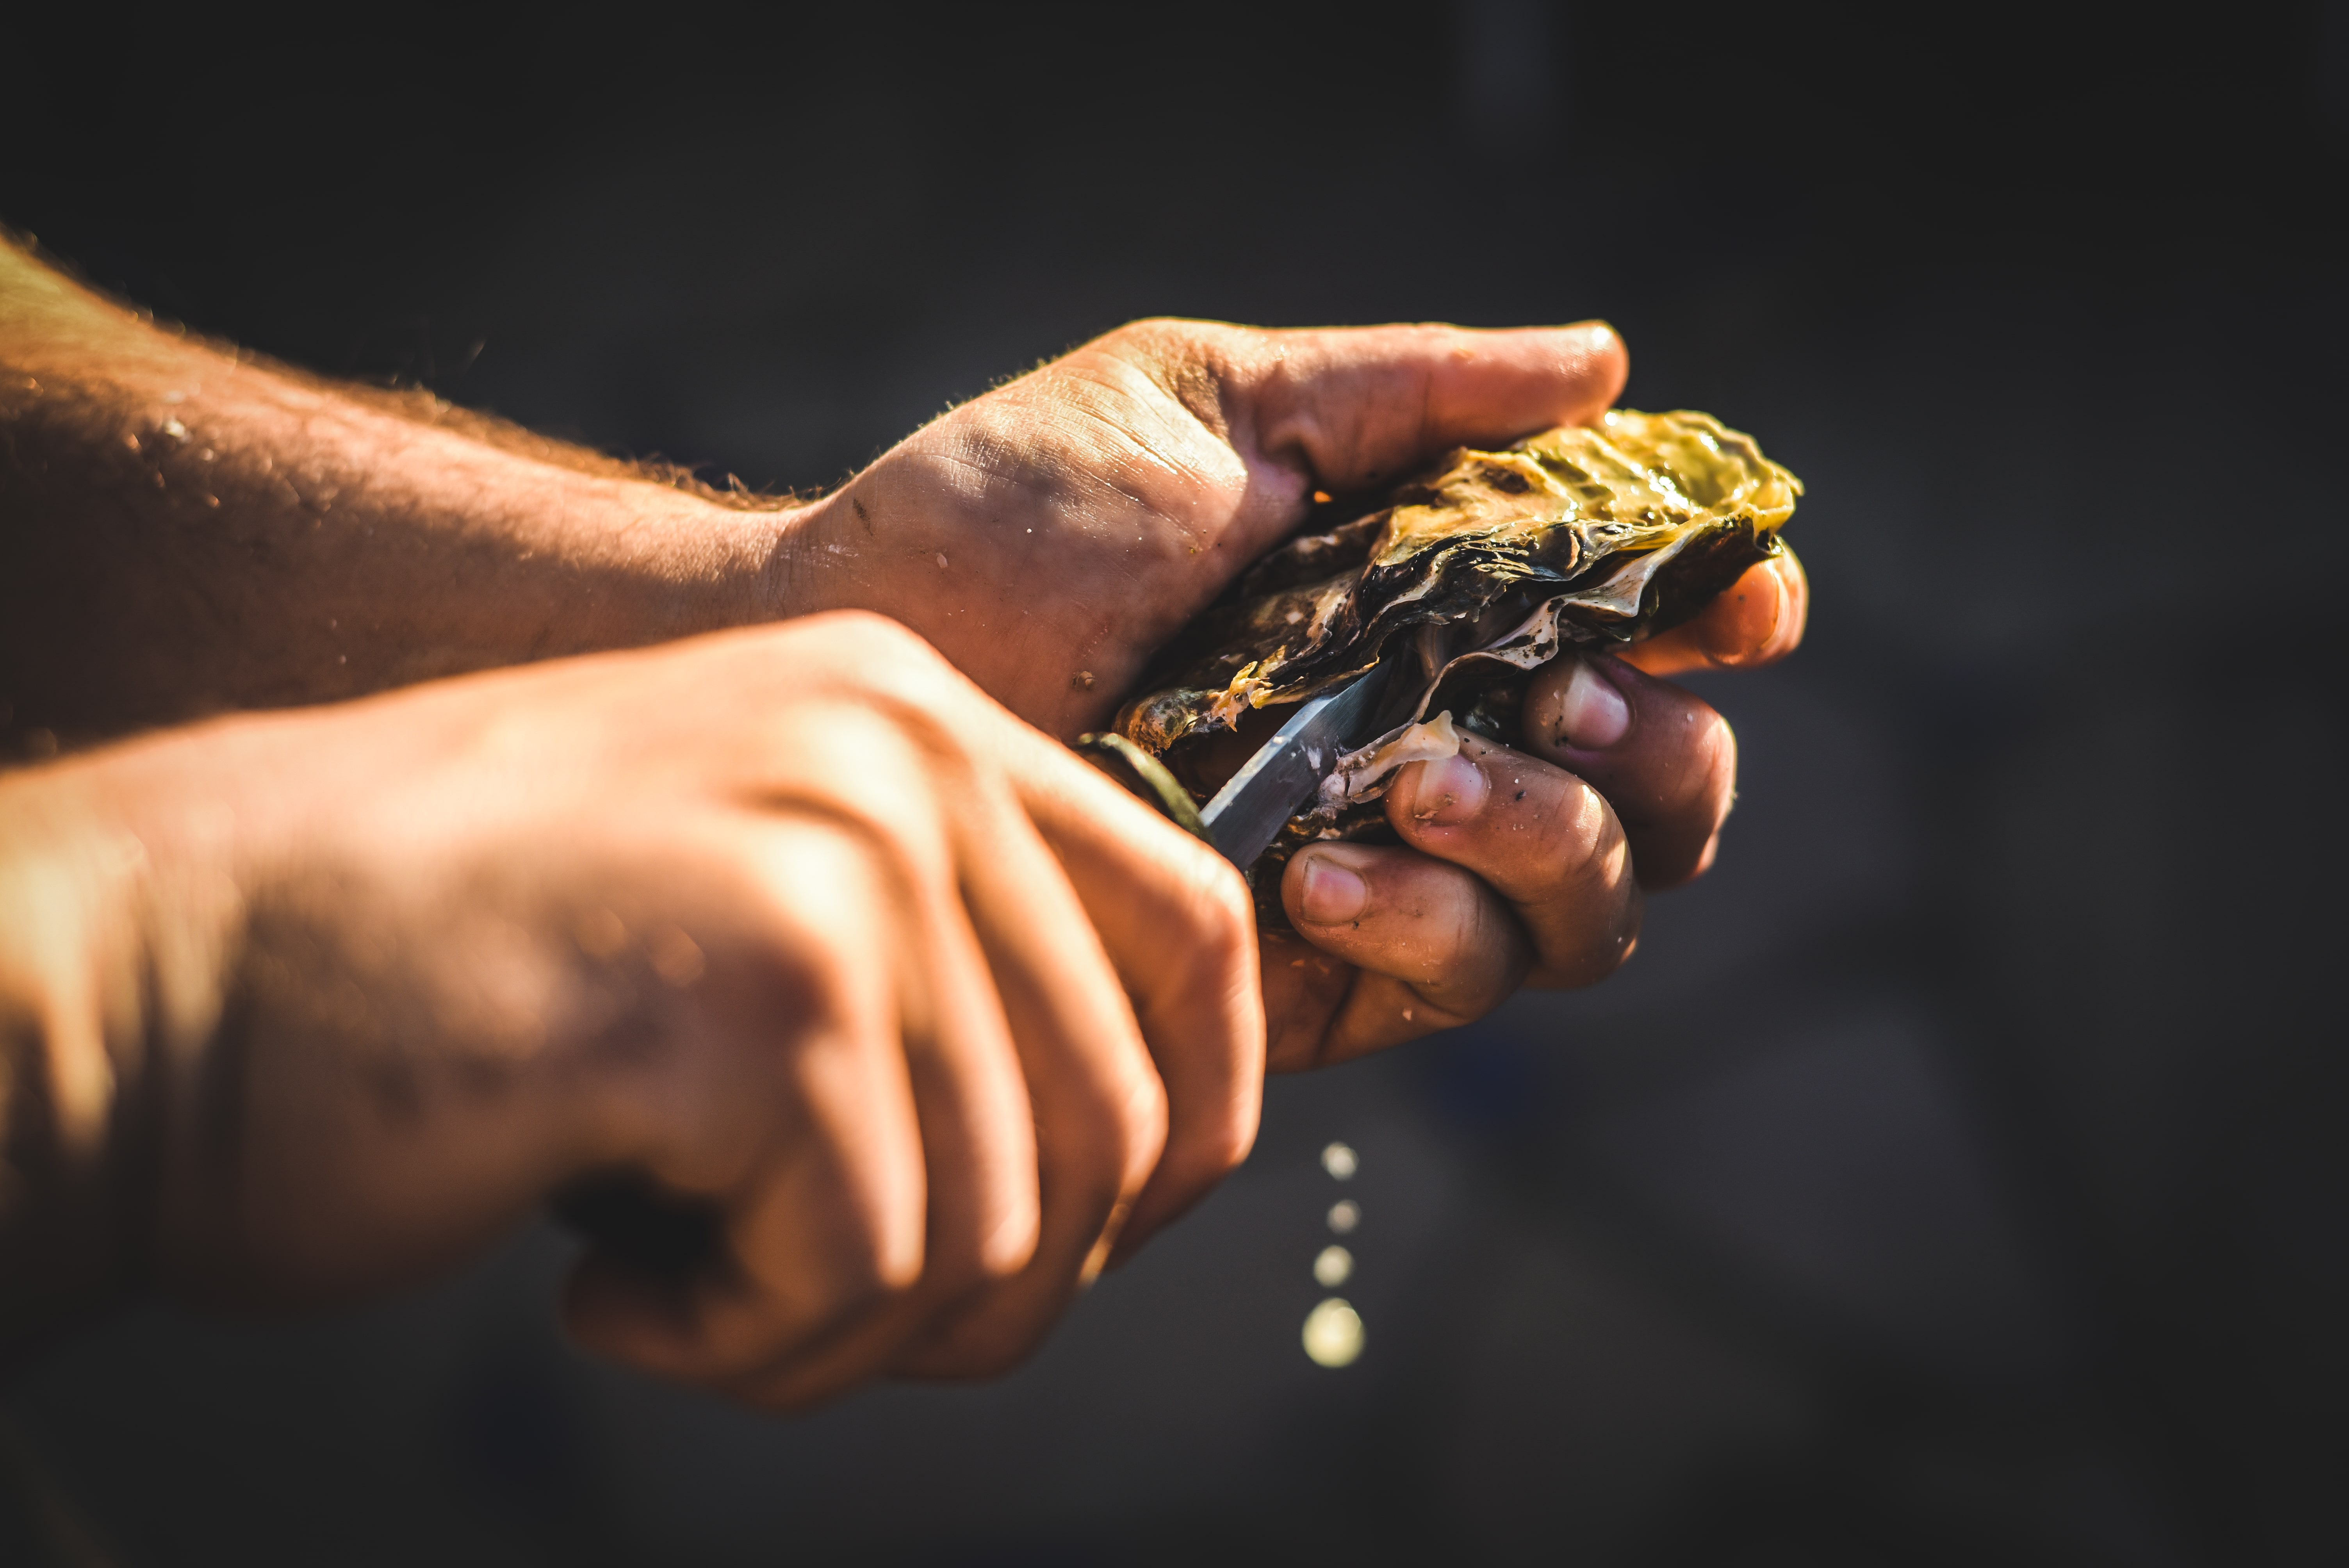 A man shucking an oyster in Cambuhat Oyster Village